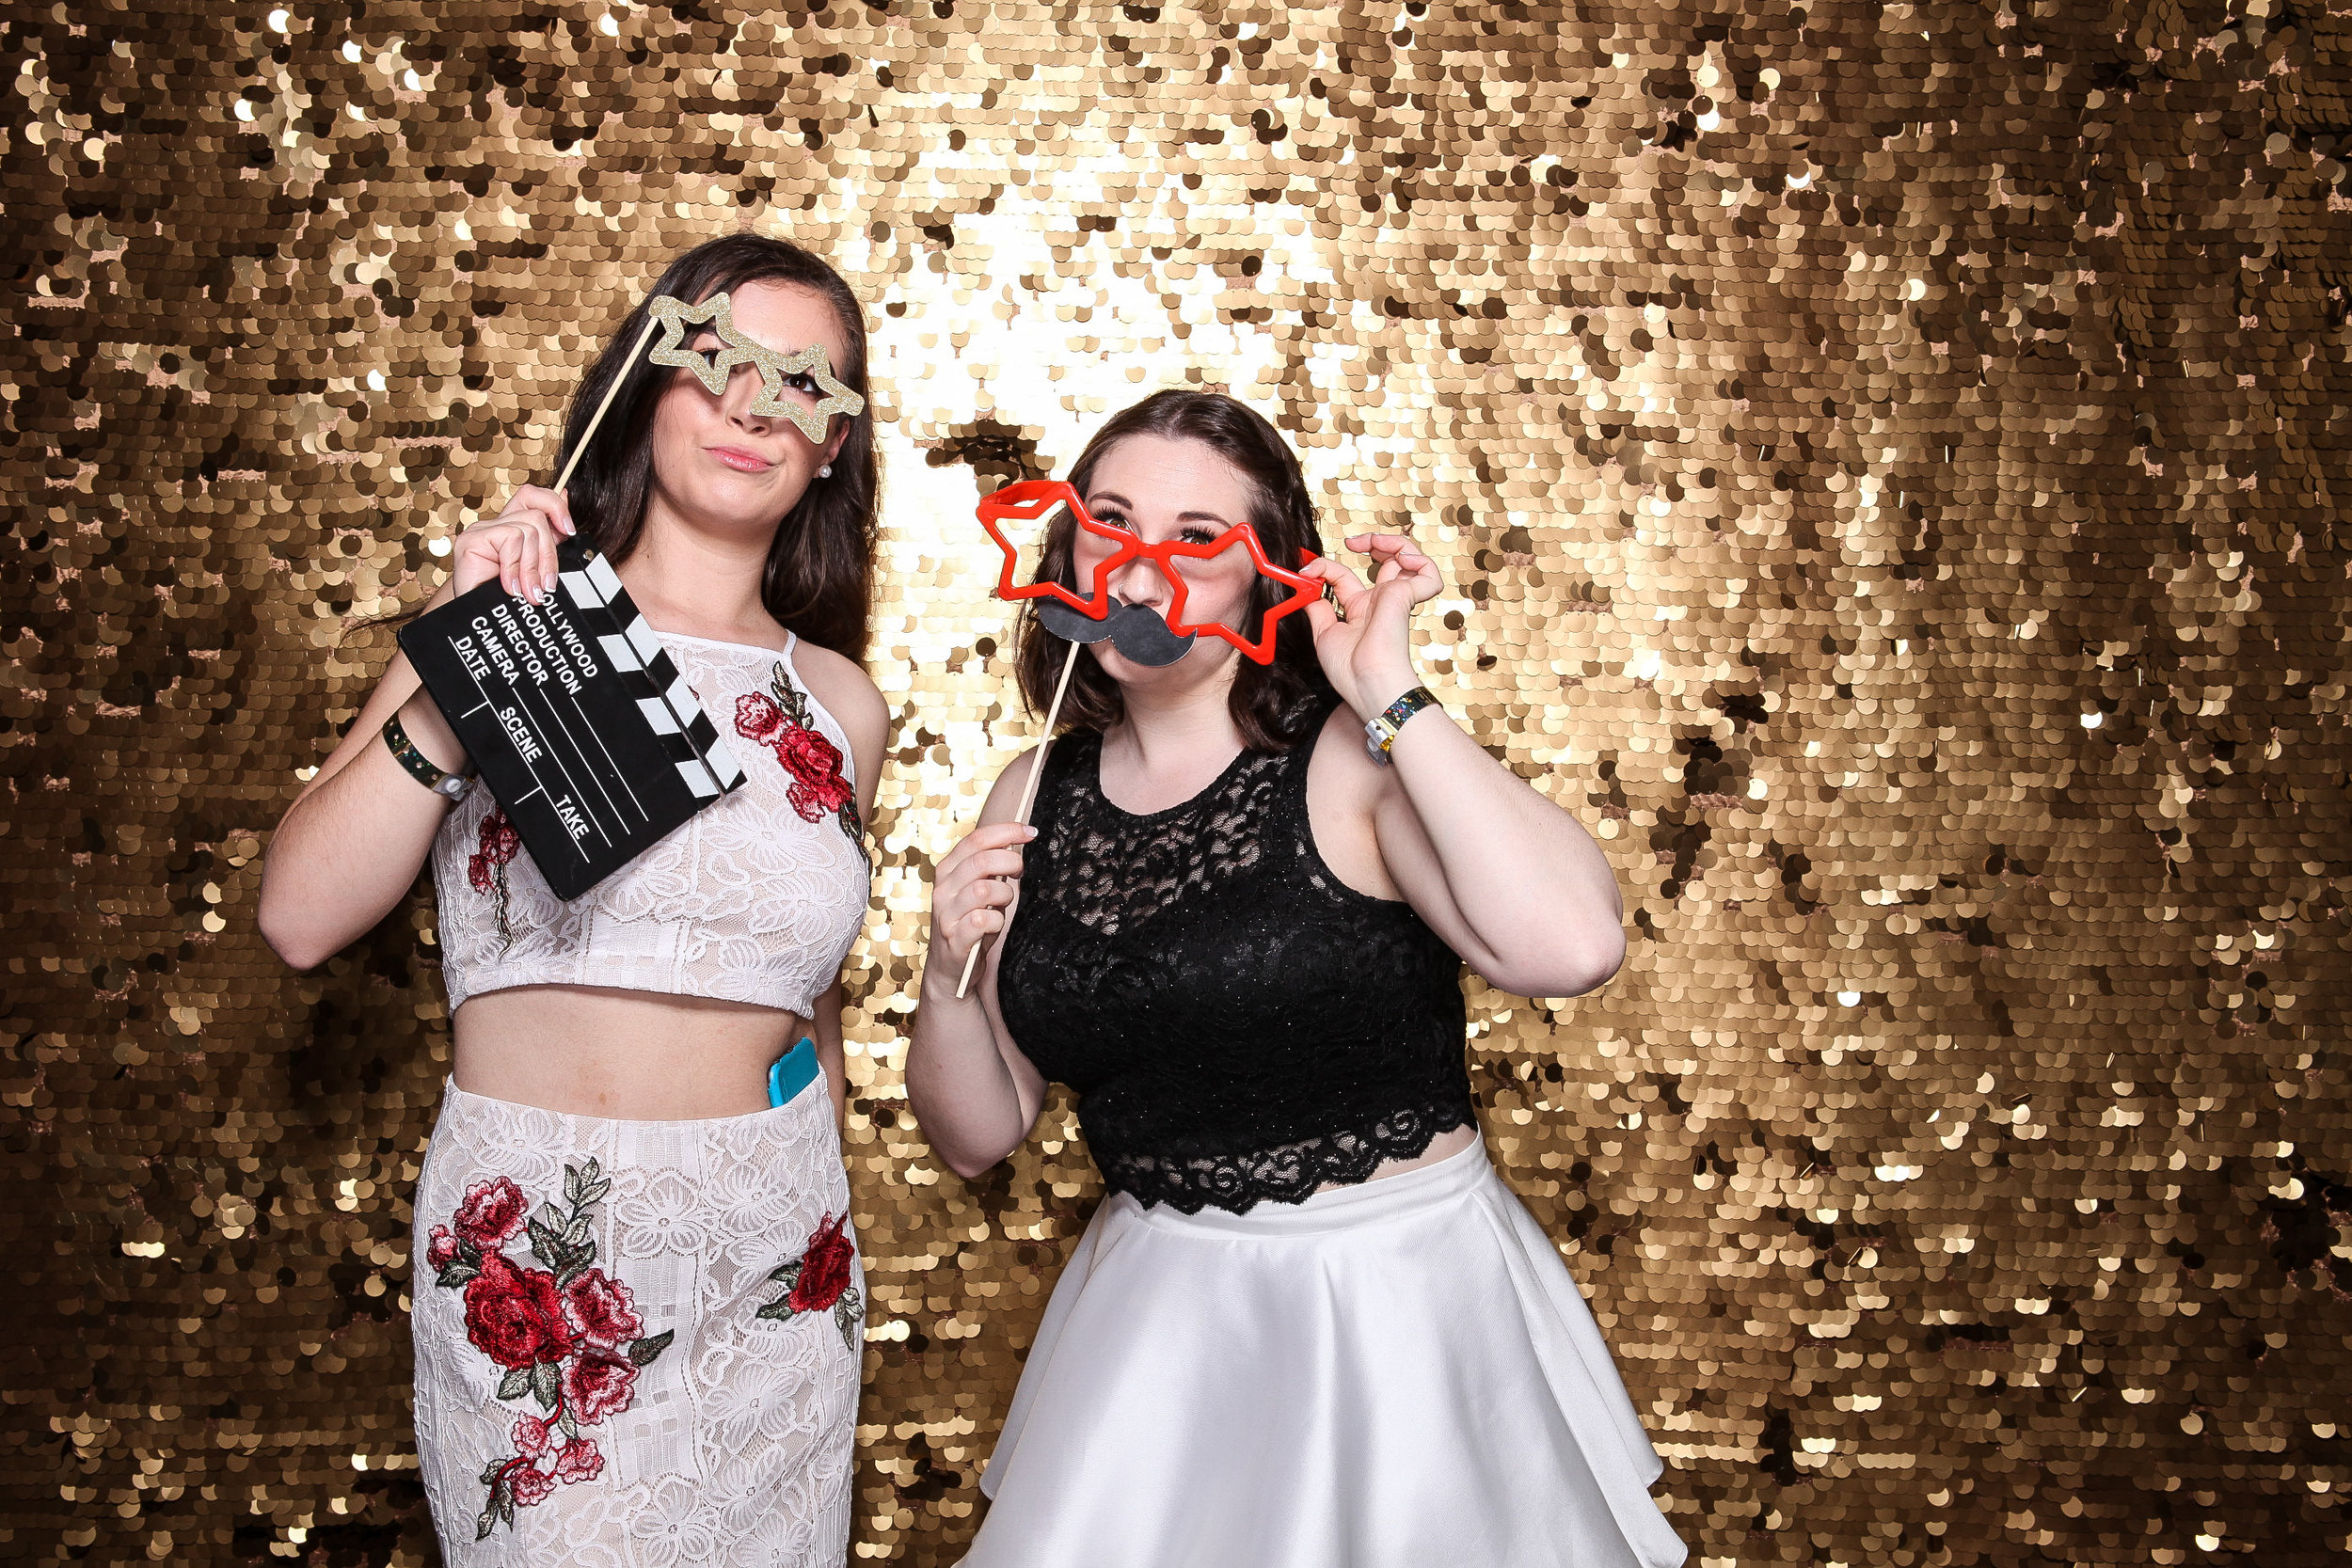 20190503_Adelphi_Senior_Formal-272.jpg